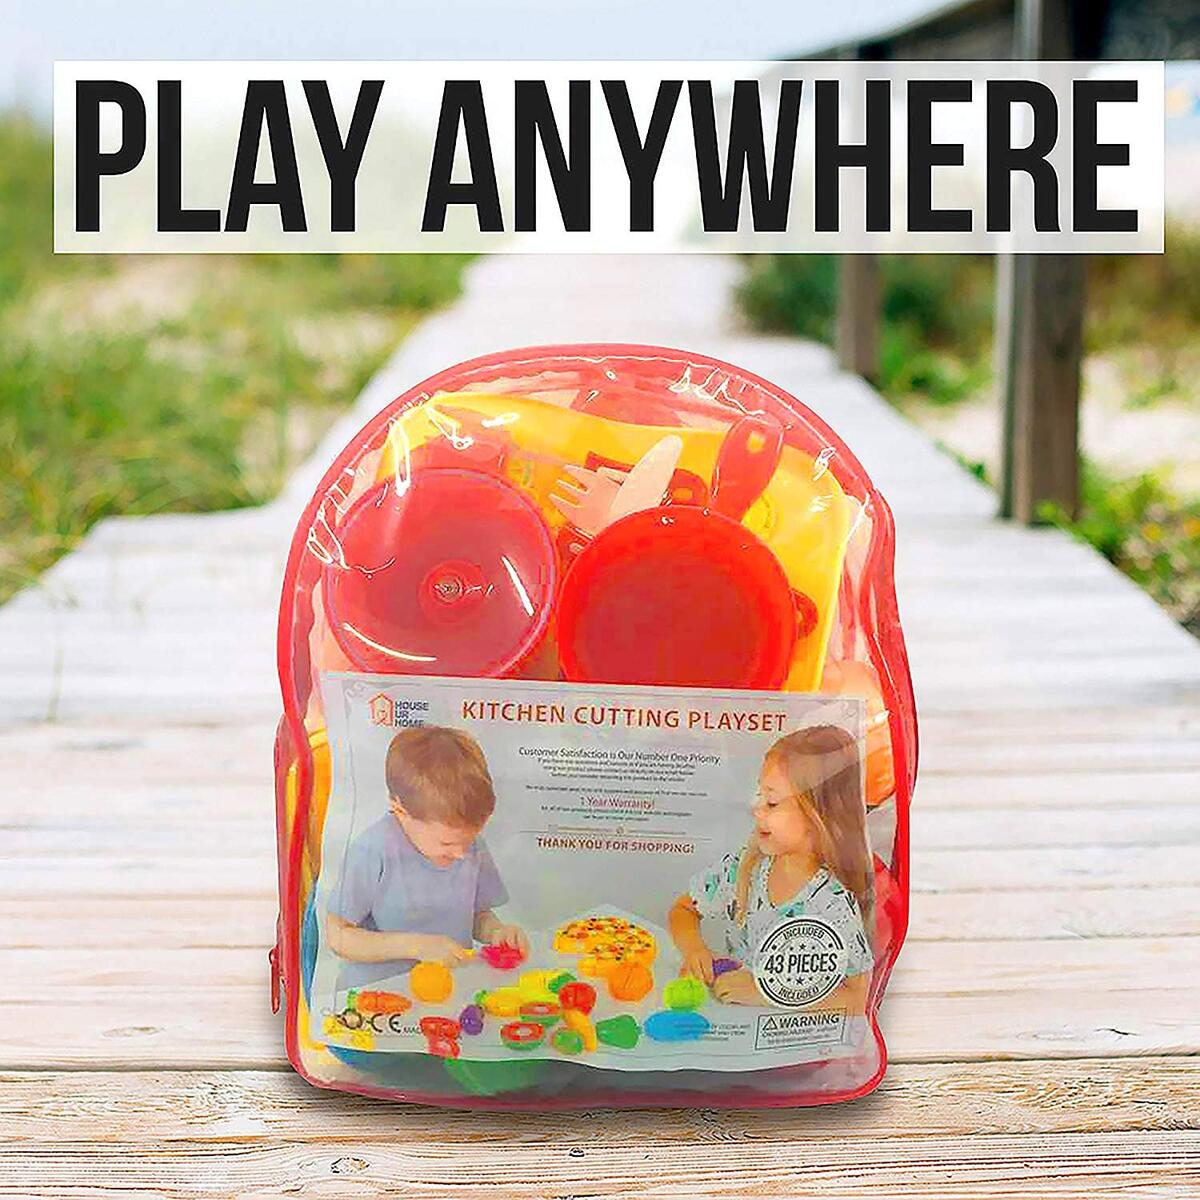 Kitchen Toys Cutting Fruit Vegetables Play Fun Cooking Little Stove top, Pot and Utensils 86 Pieces Pizza & Knife Toy, Cutting Board. Pretend Cutting Food Playset Carry Bag for Girls Boys Toddler,